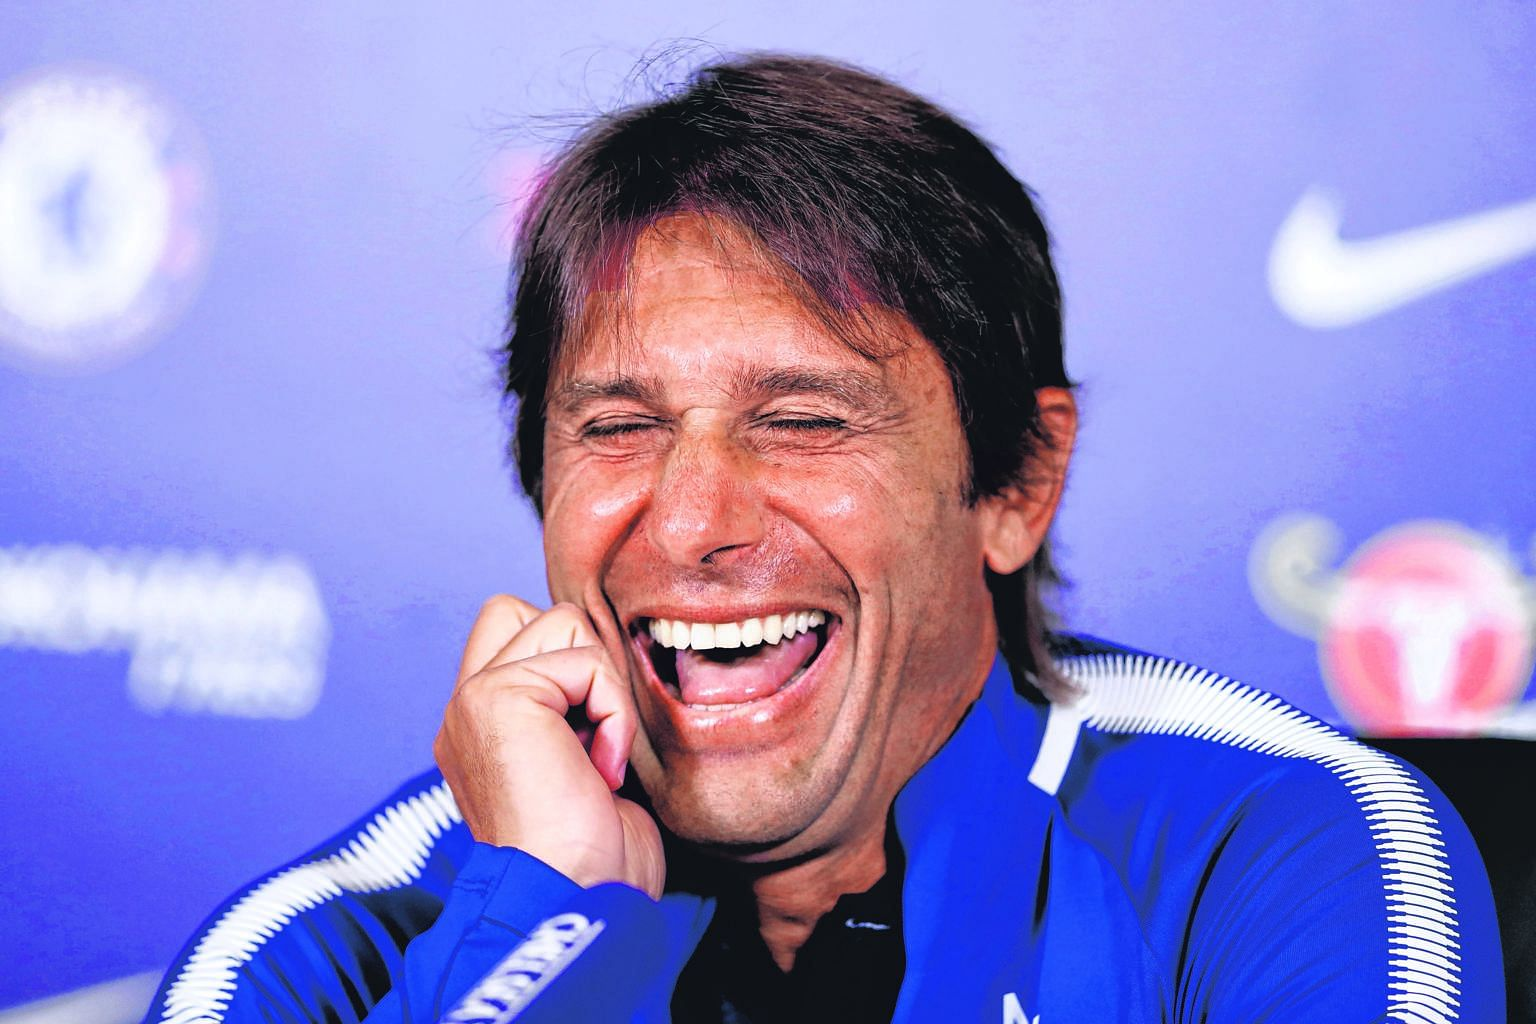 Behind Antonio Conte's fake laugh last Friday, he is brooding. The Italian boss is the bookies' favourite to be the first EPL casualty in 2017-18.